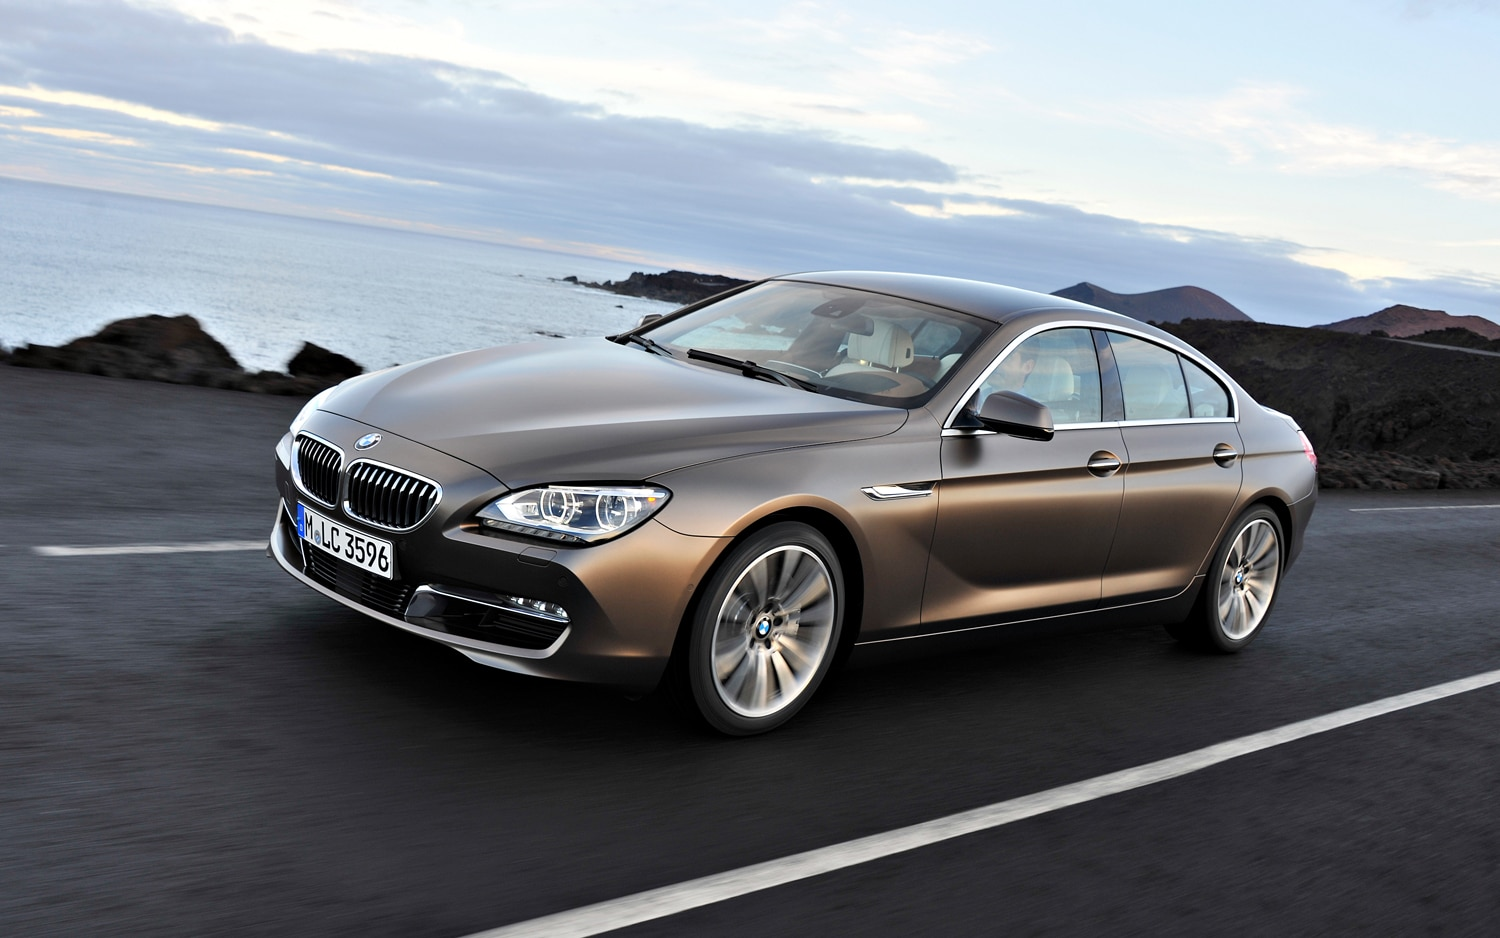 bmw releases pricing on m5 m6 x6 m and 6 series gran coupe. Black Bedroom Furniture Sets. Home Design Ideas